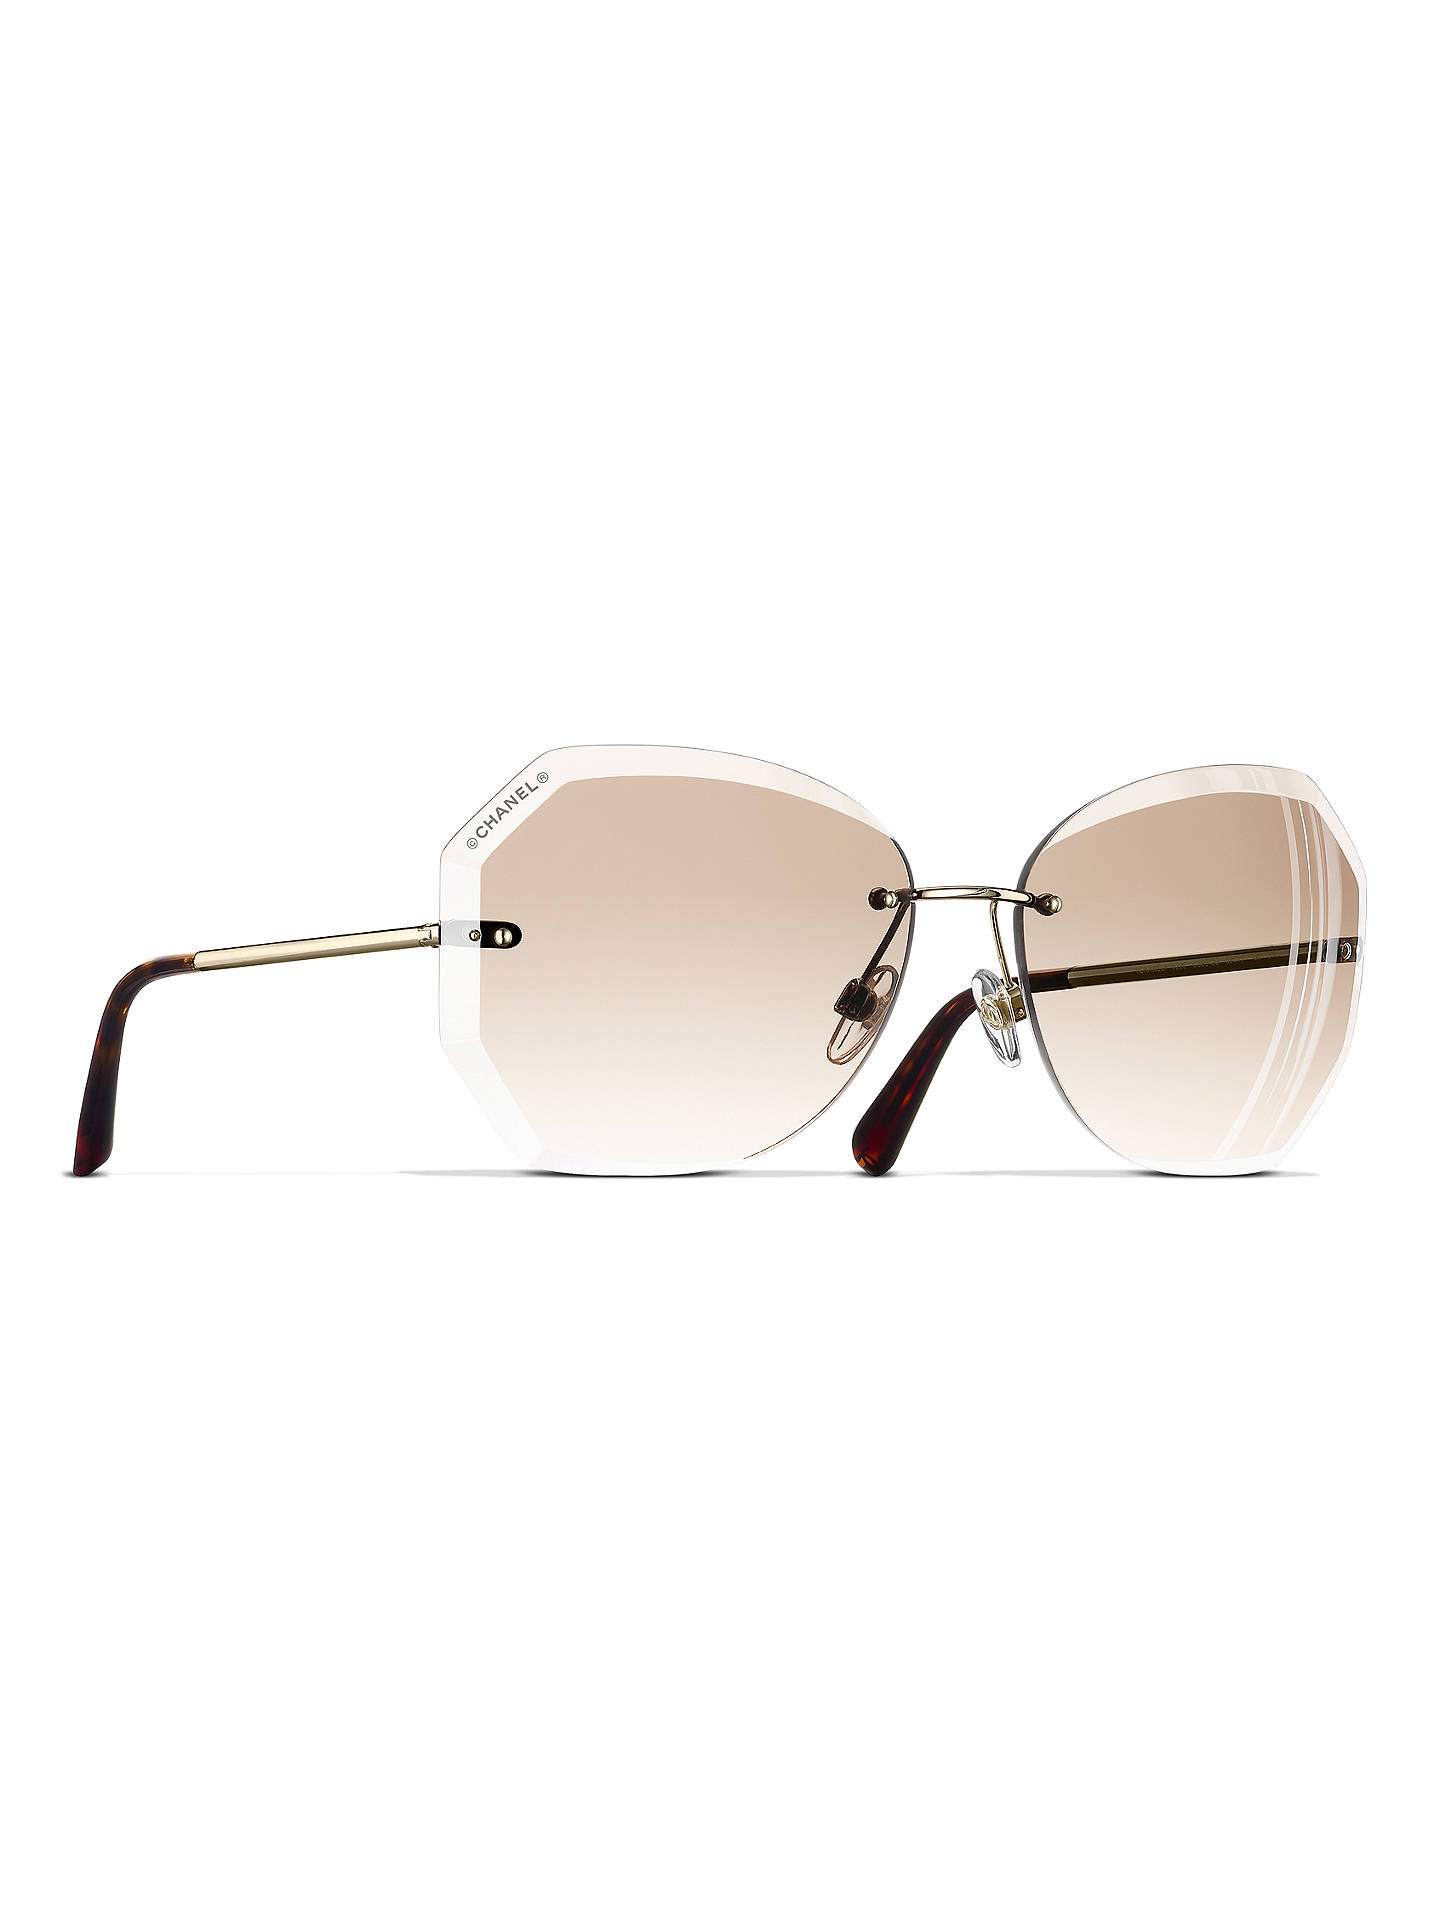 0aab4c10f6cf Buy CHANEL Round Sunglasses CH4220 Gold Beige Online at johnlewis.com ...